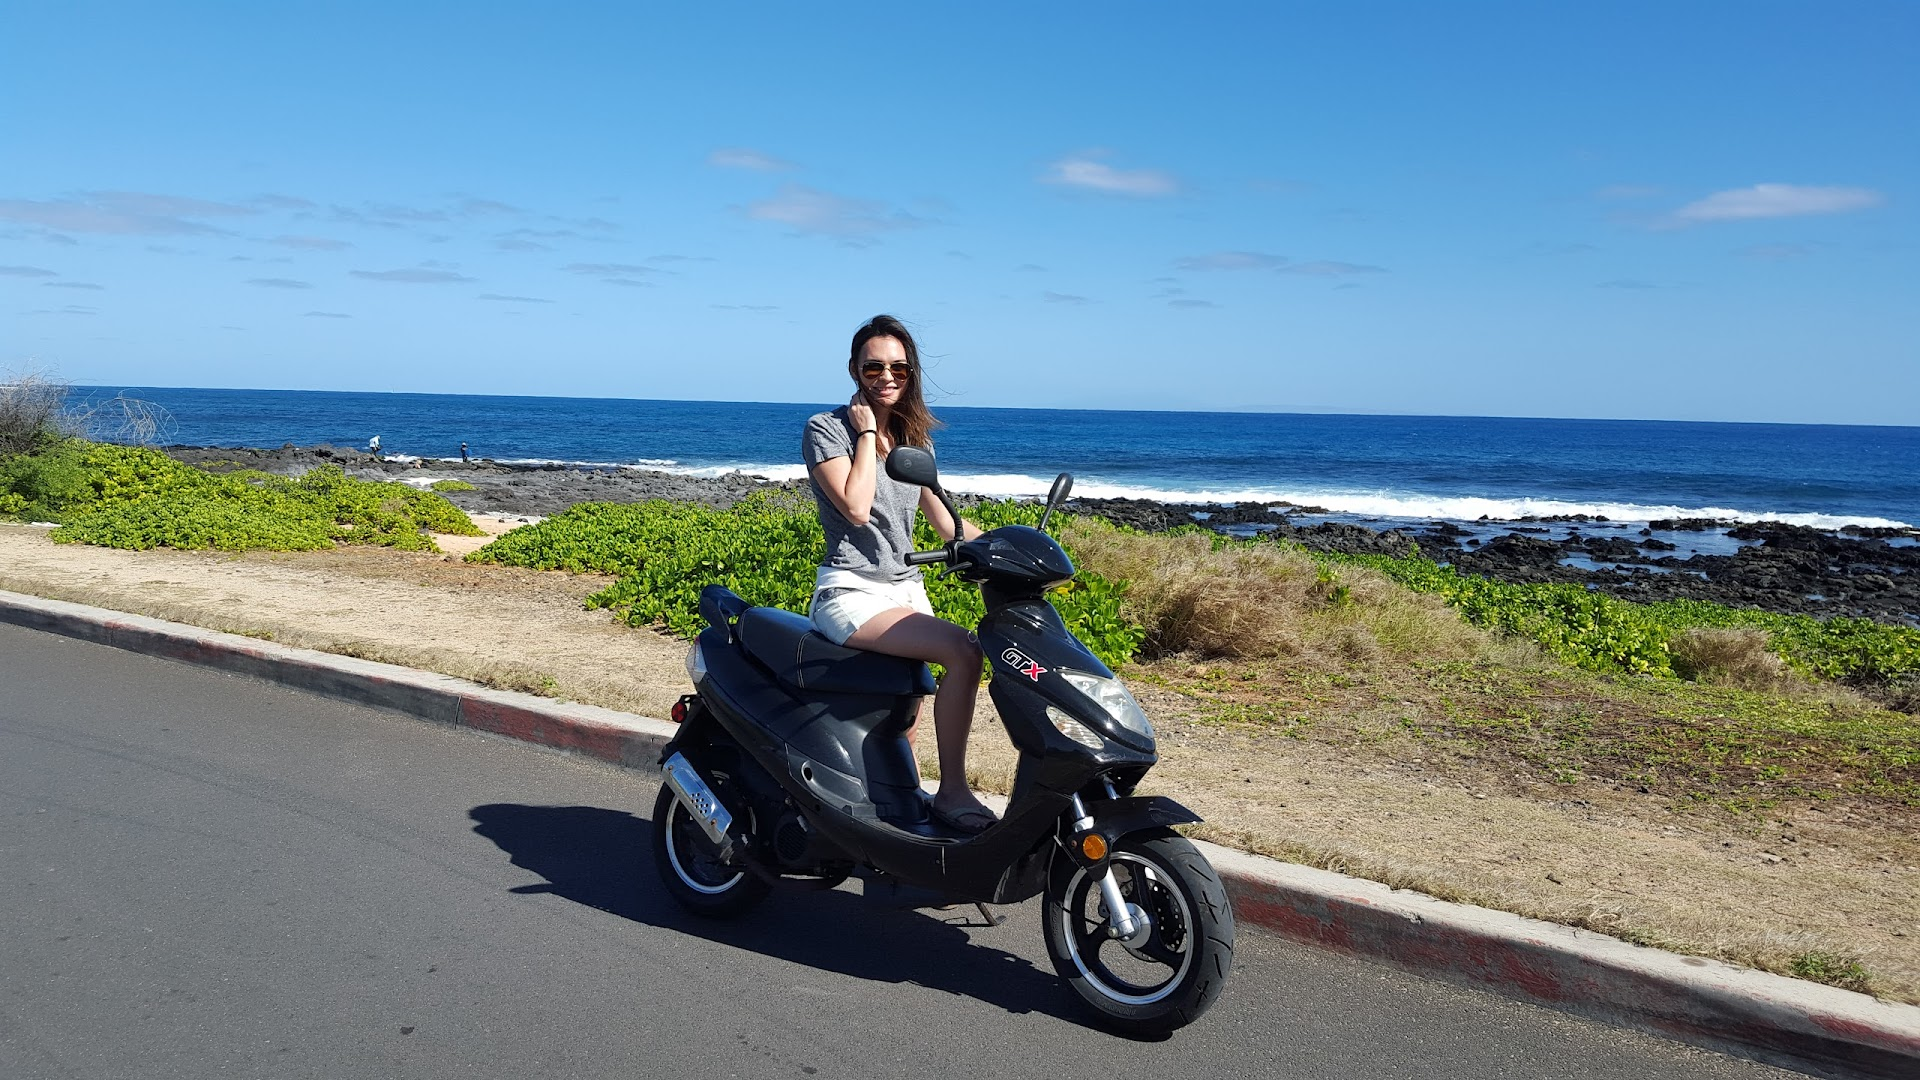 scooter rental, moped, how to get around hawaii, cheap transportation, fun things to do, oahu, travel blogger, asian blogger, lds, ocean,